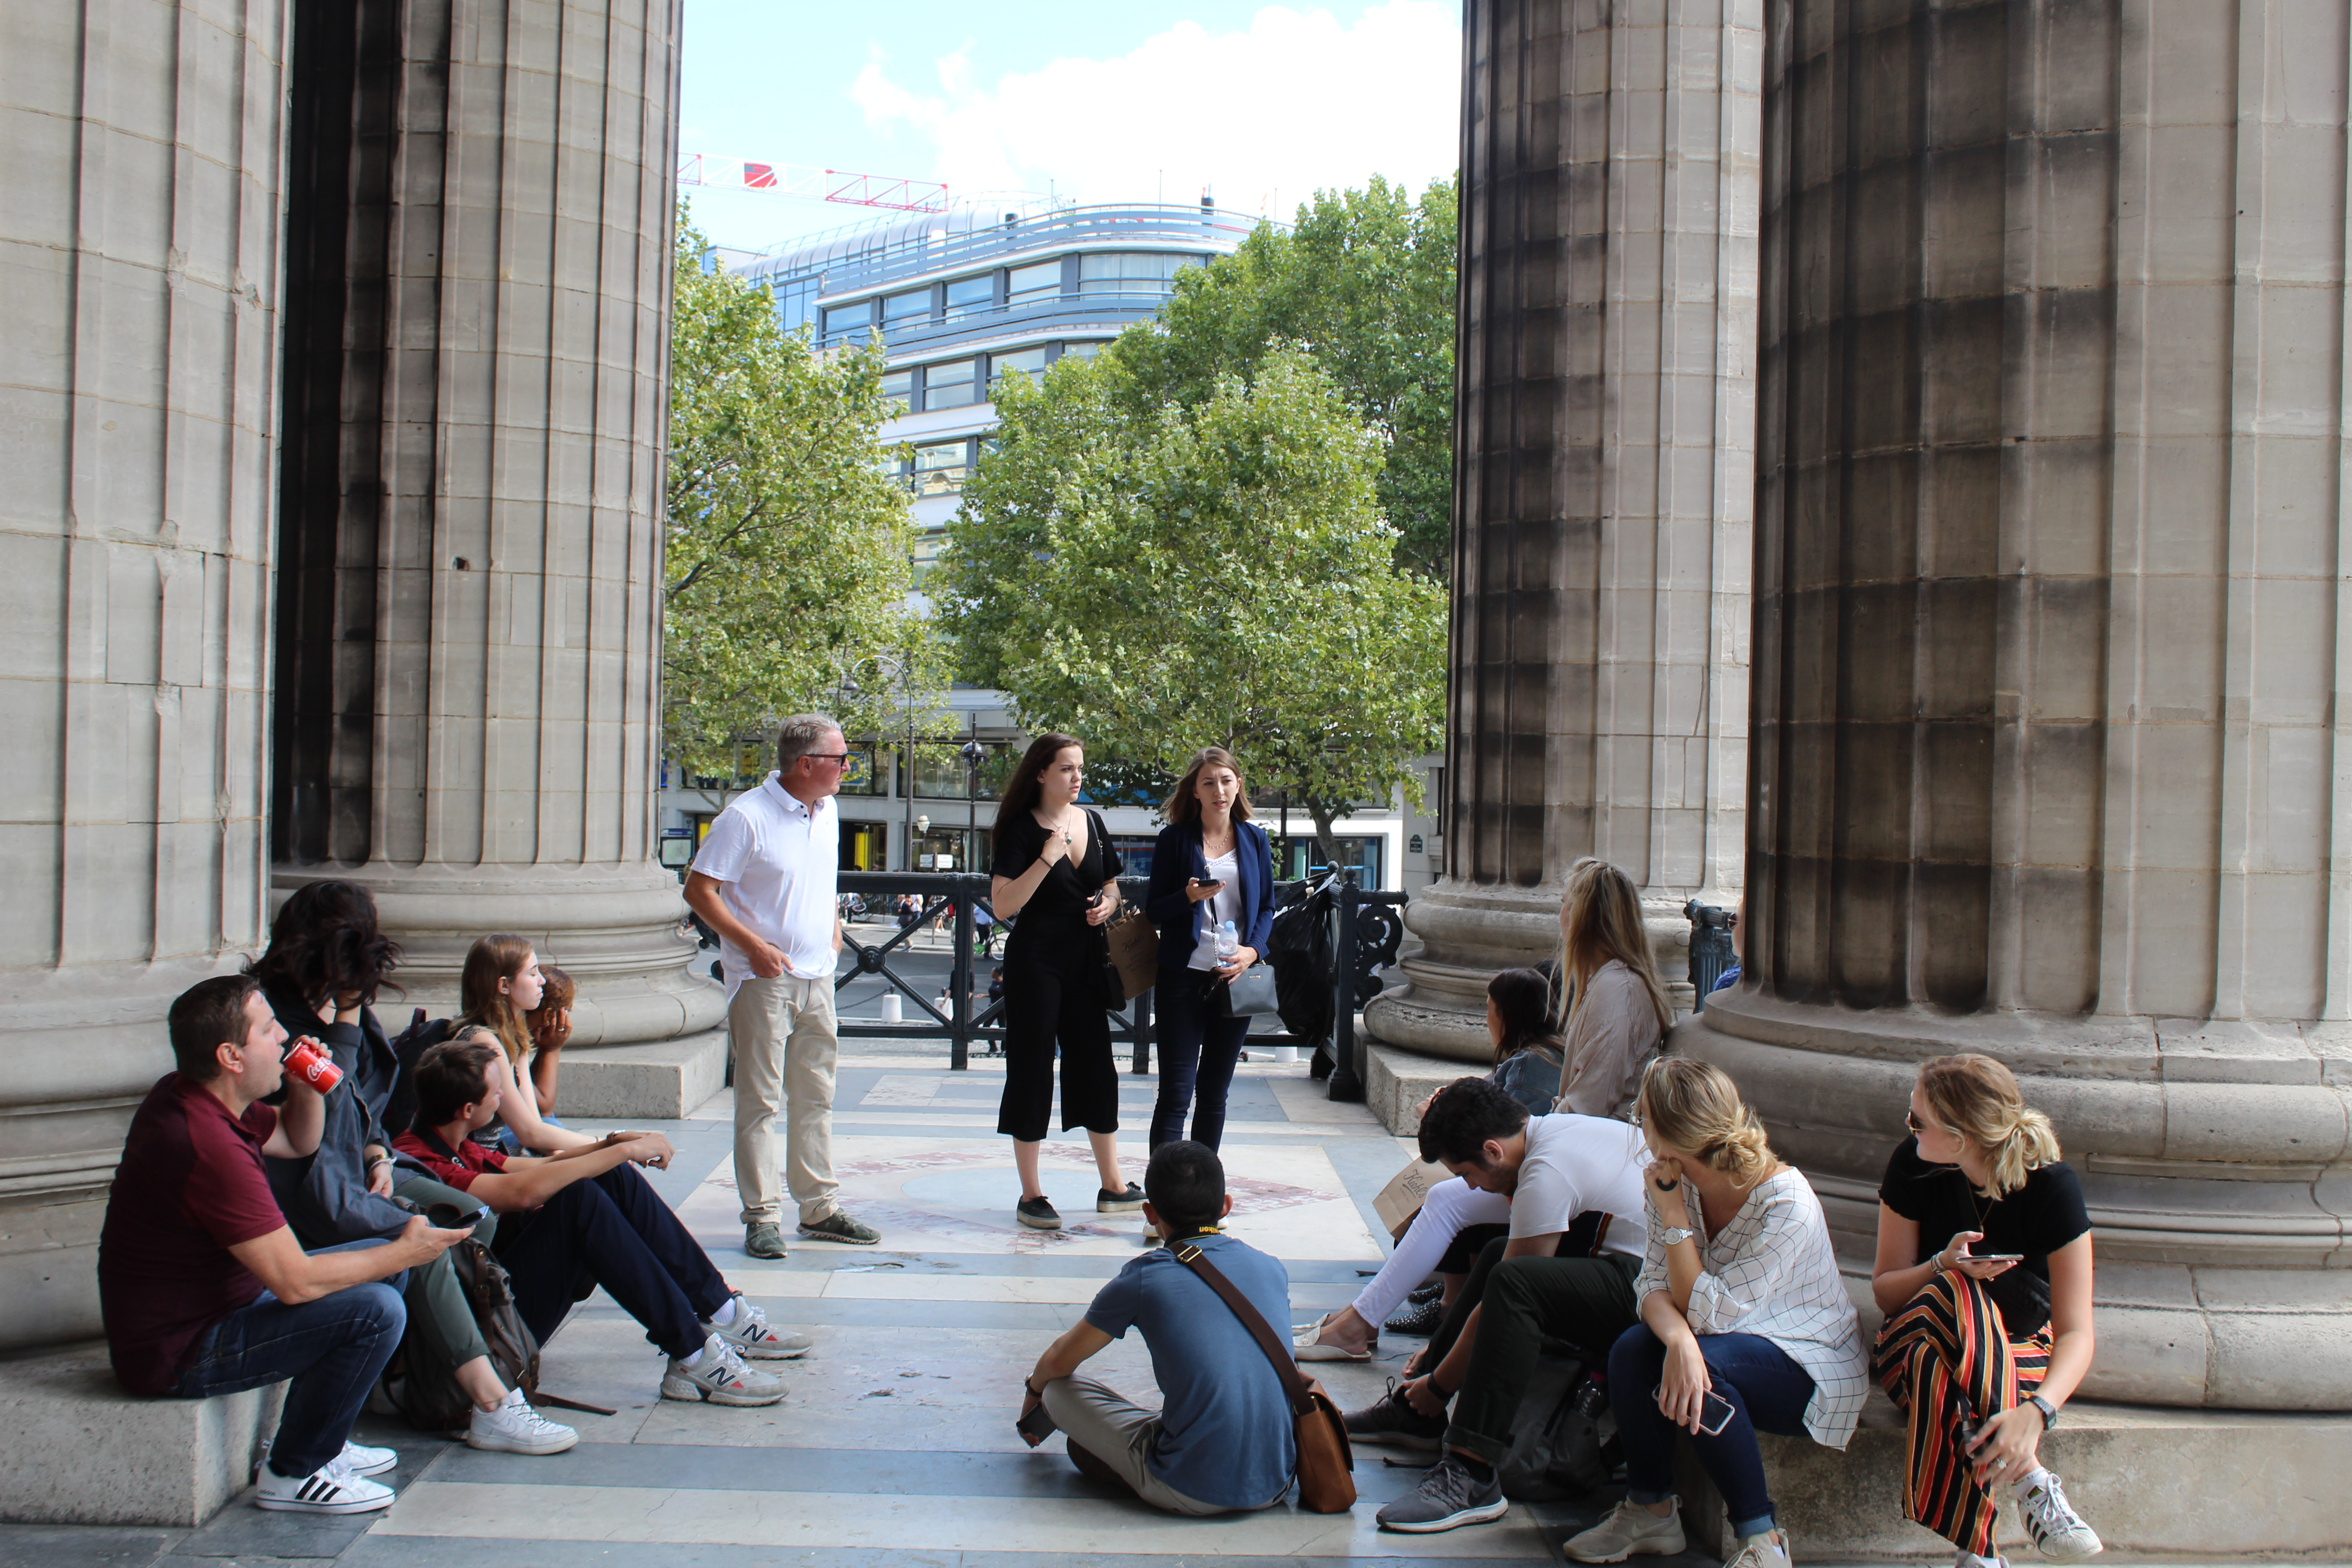 Group of people sitting on the bases of columns, and 3 people standing.